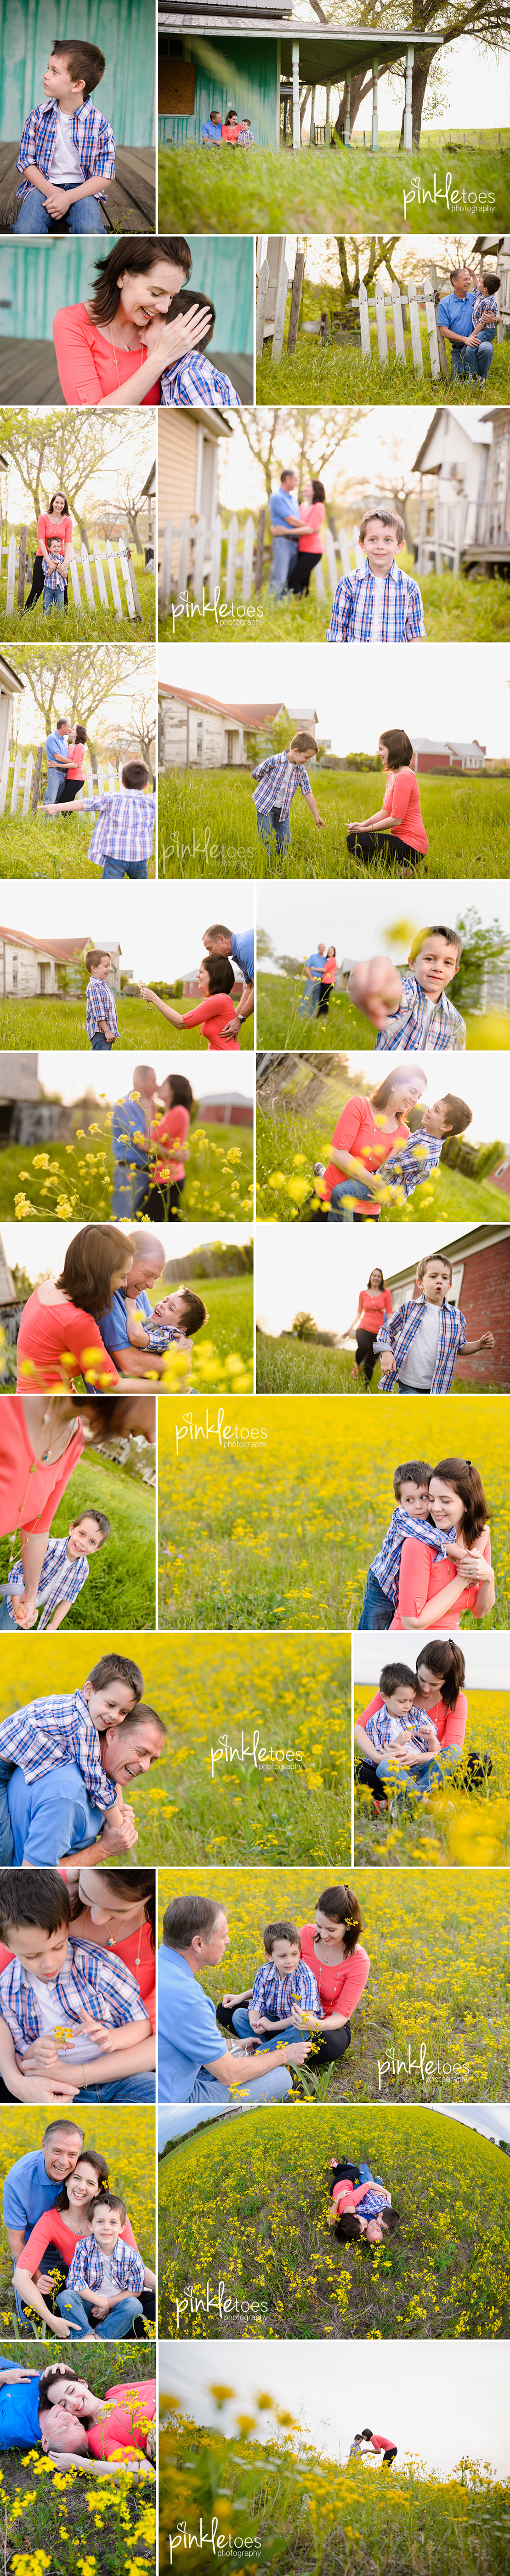 kp-austin-wildflower-family-outdoor-lifestyle-candid-photographer